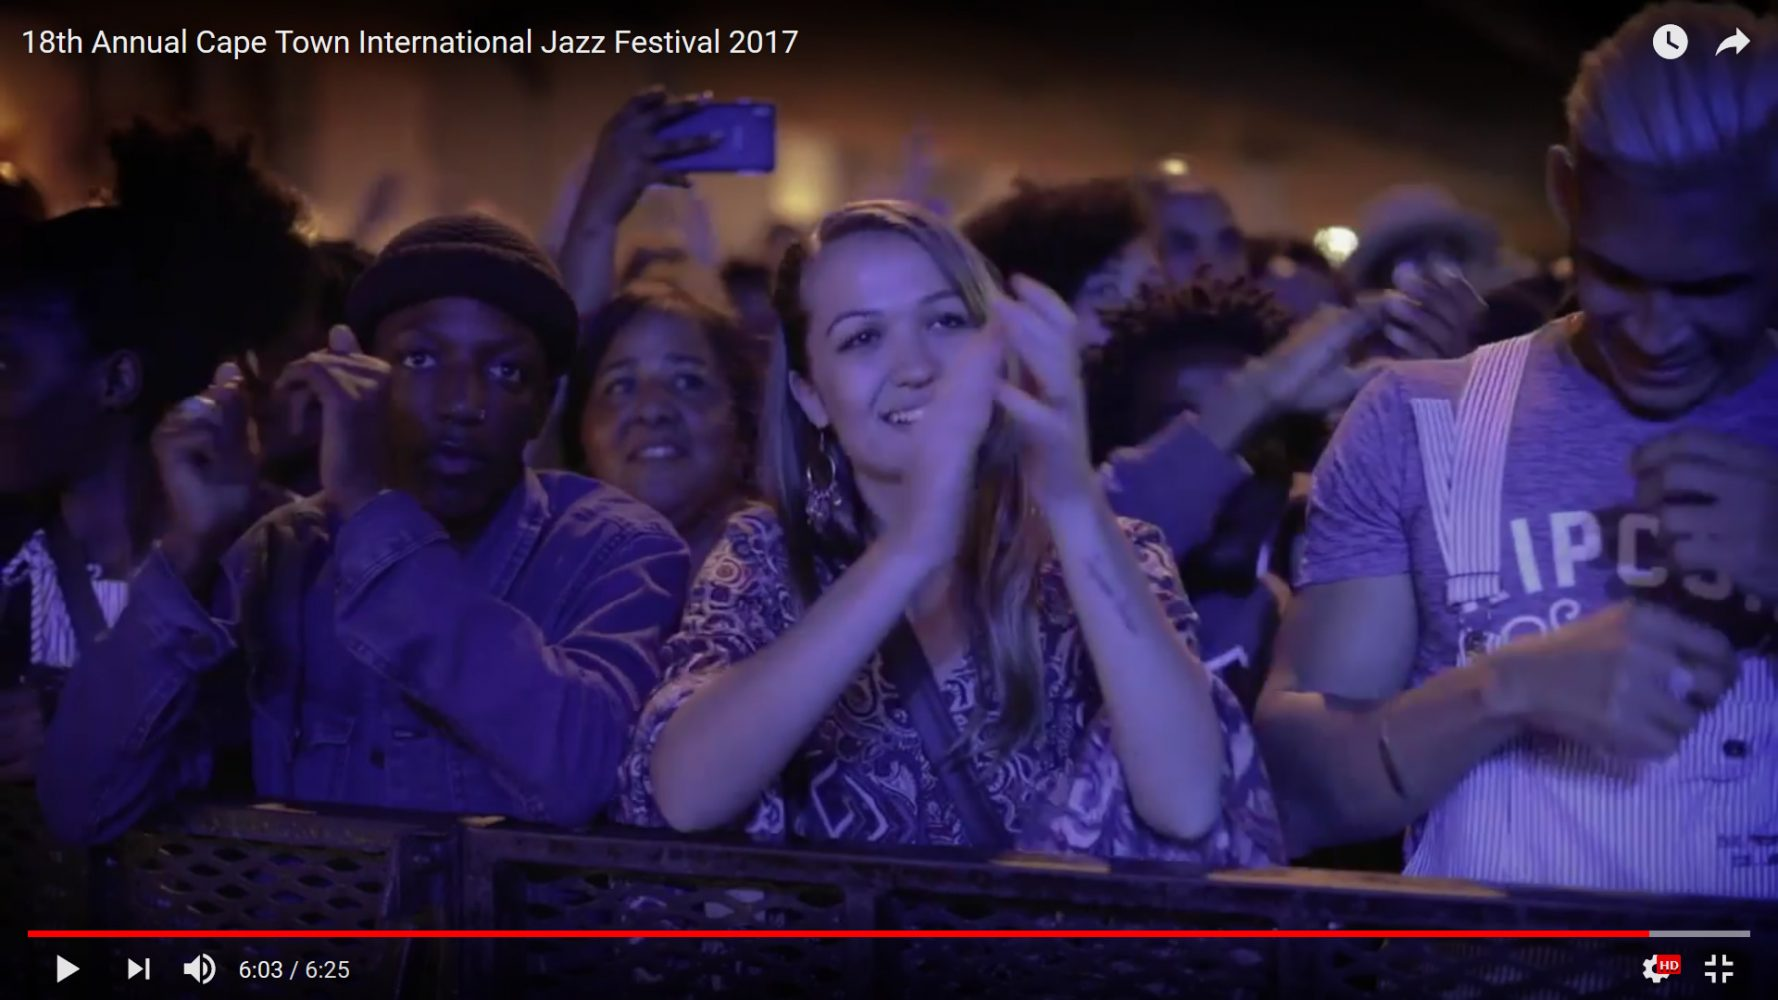 18th Annual Cape Town International Jazz Festival 2017